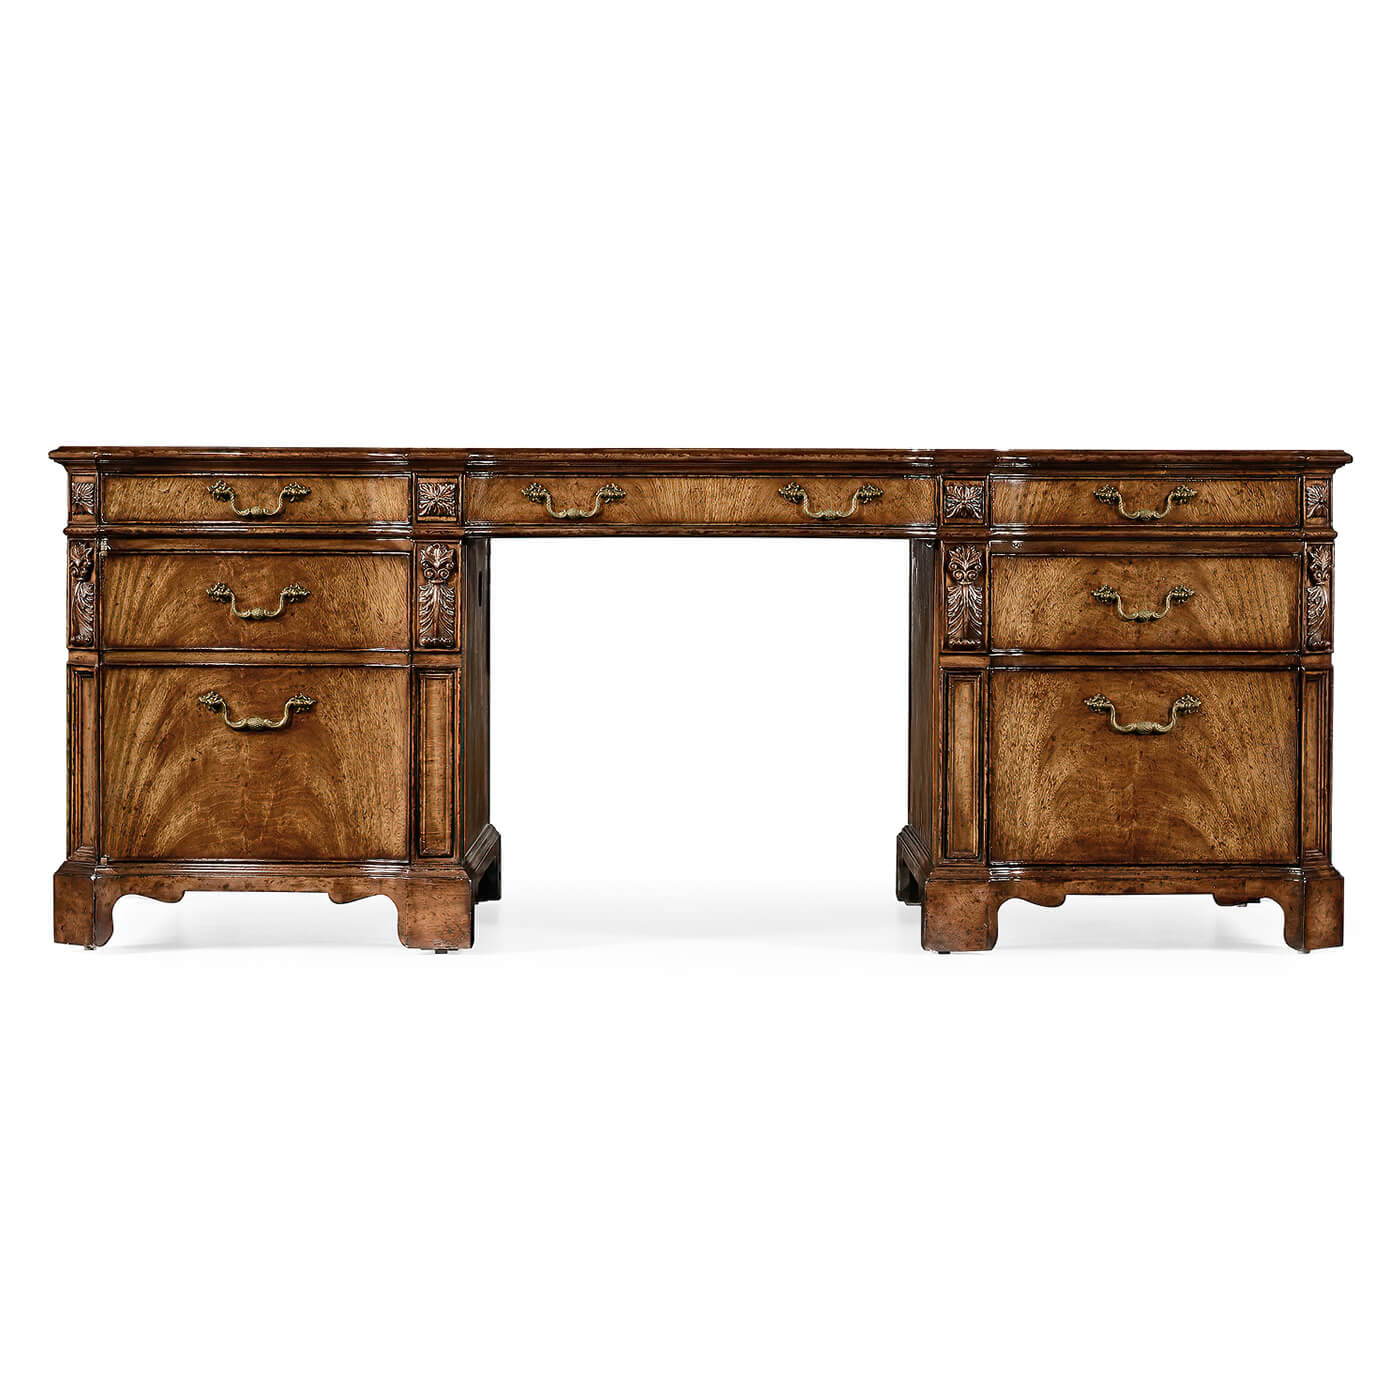 George III Walnut Pedestal Desk